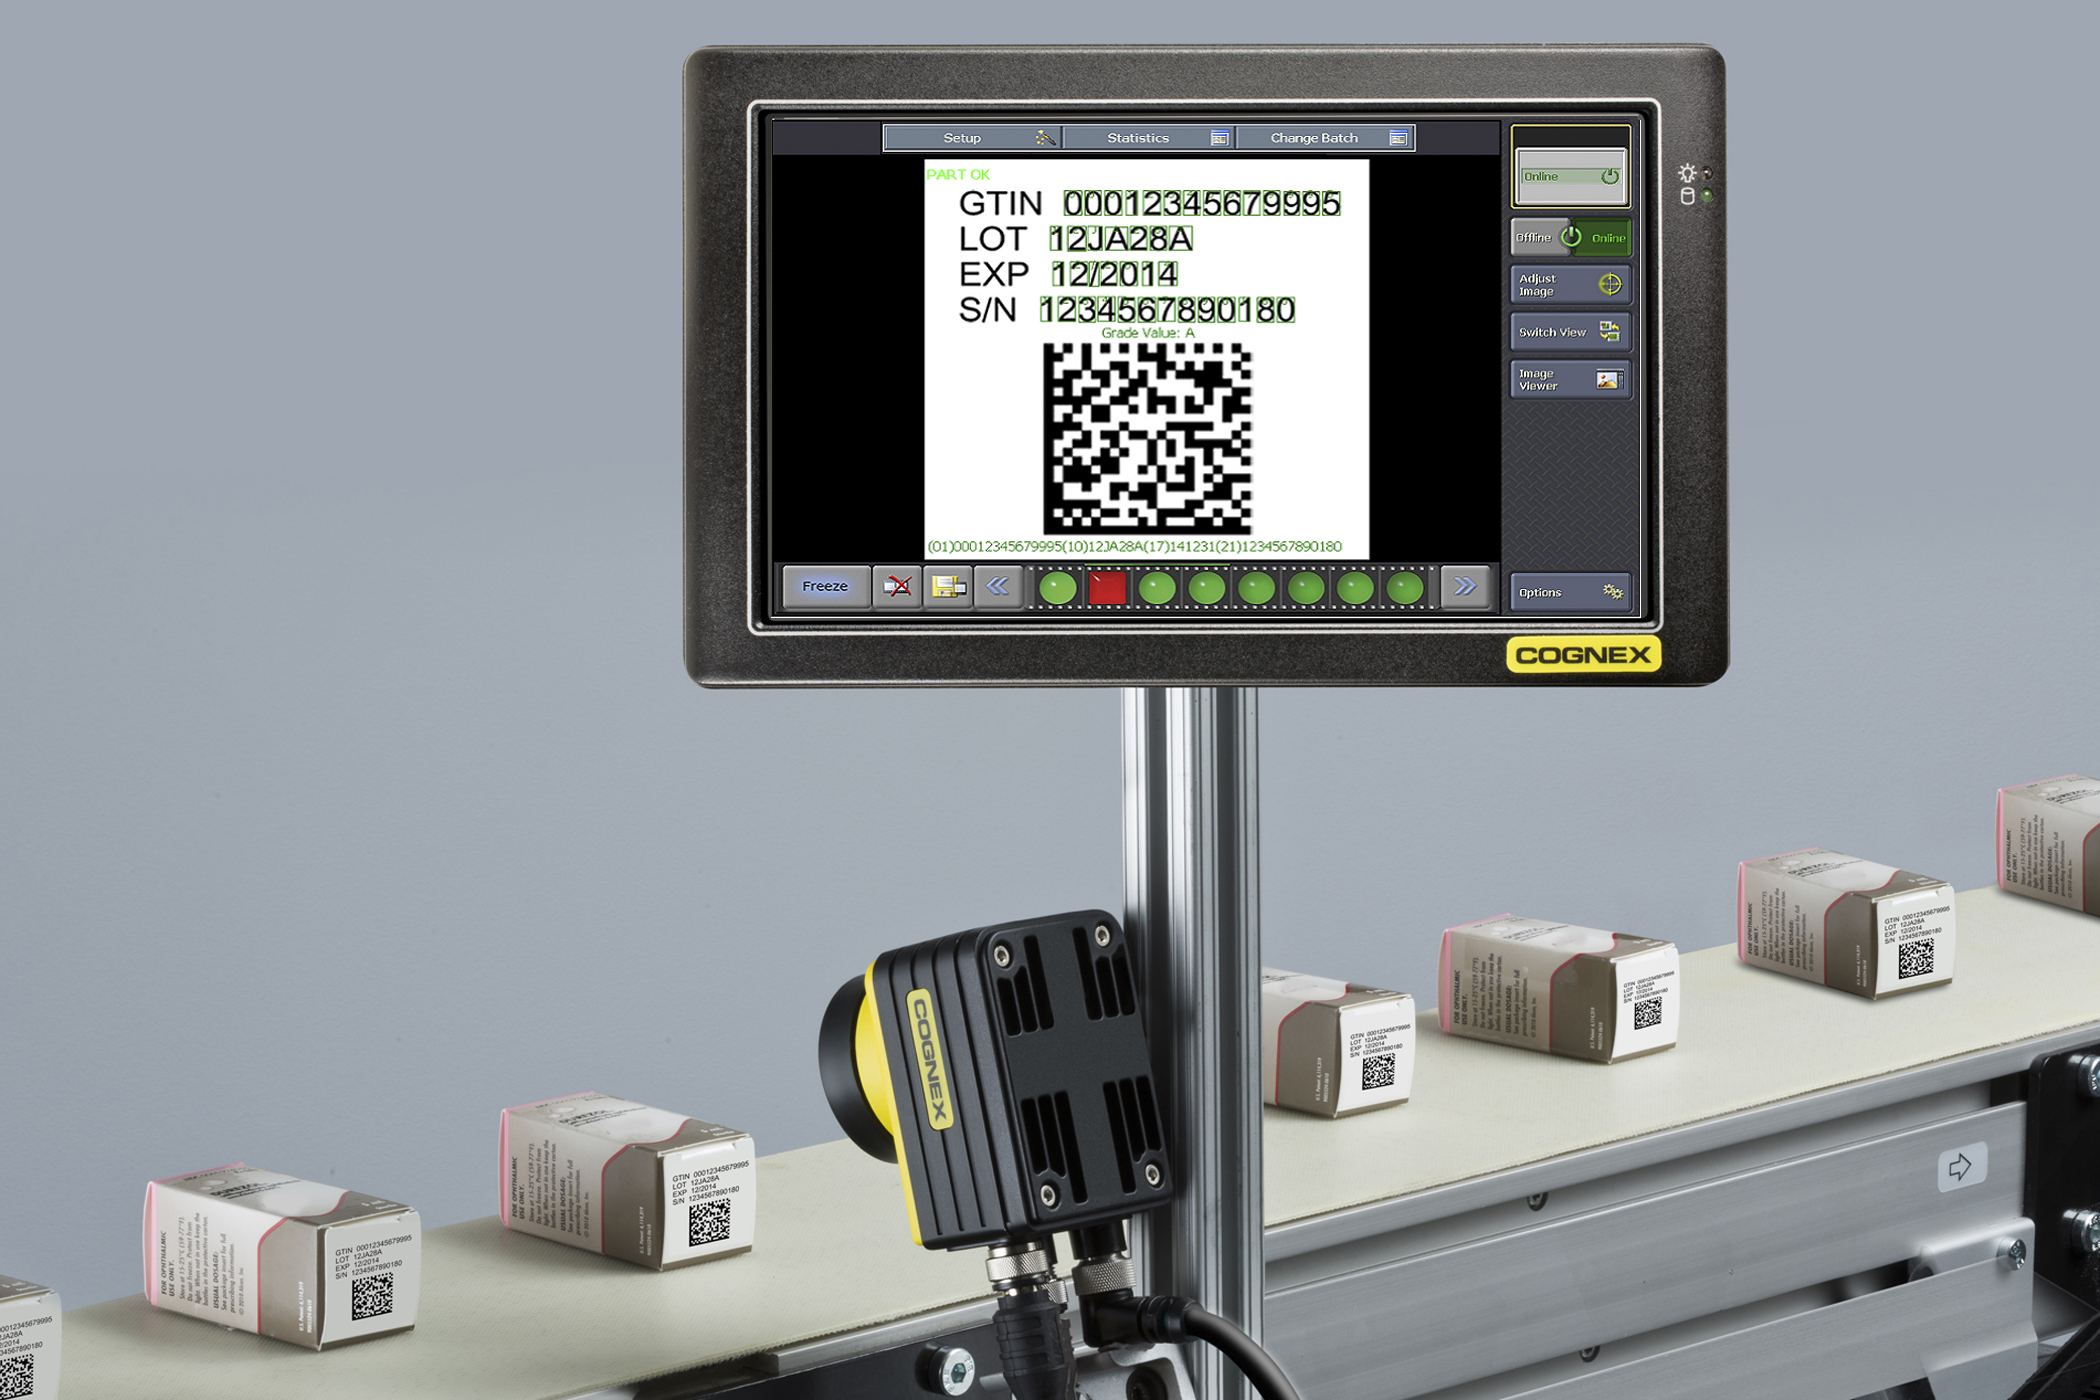 insight track and trace packaging identification screen verification